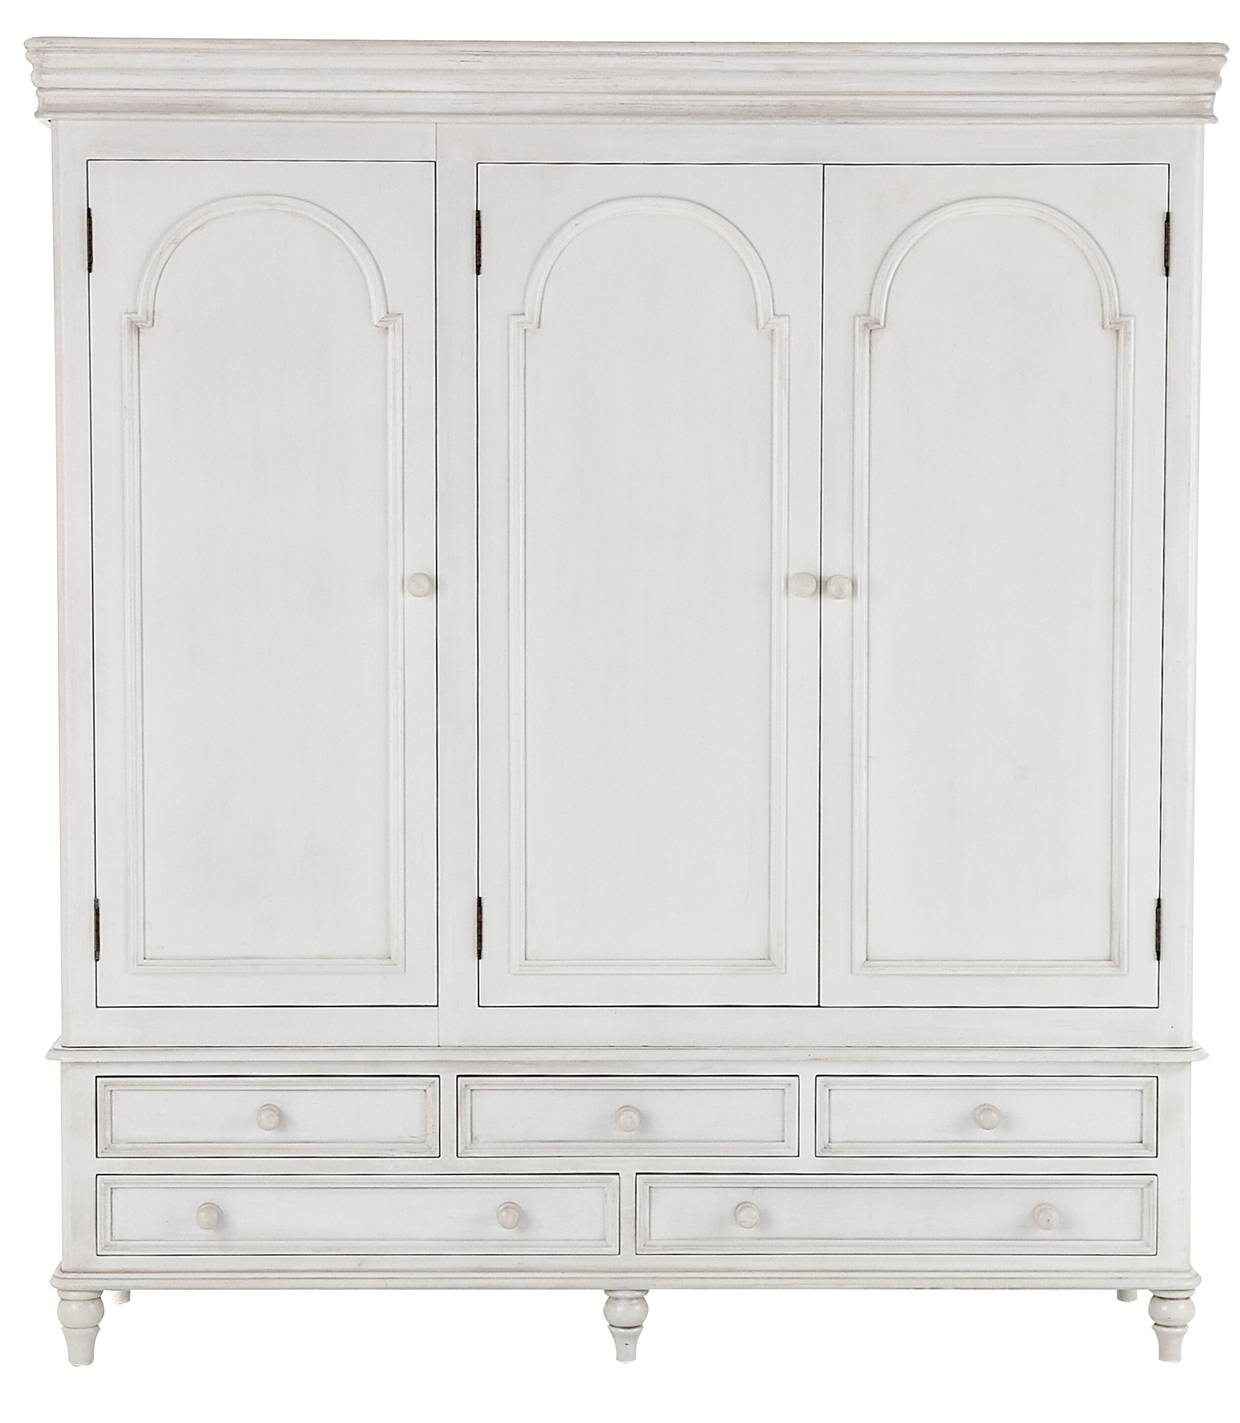 Provence Antique White Bedroom Furniture, Shabby Chic Chest Of pertaining to White Shabby Chic Wardrobes (Image 6 of 15)